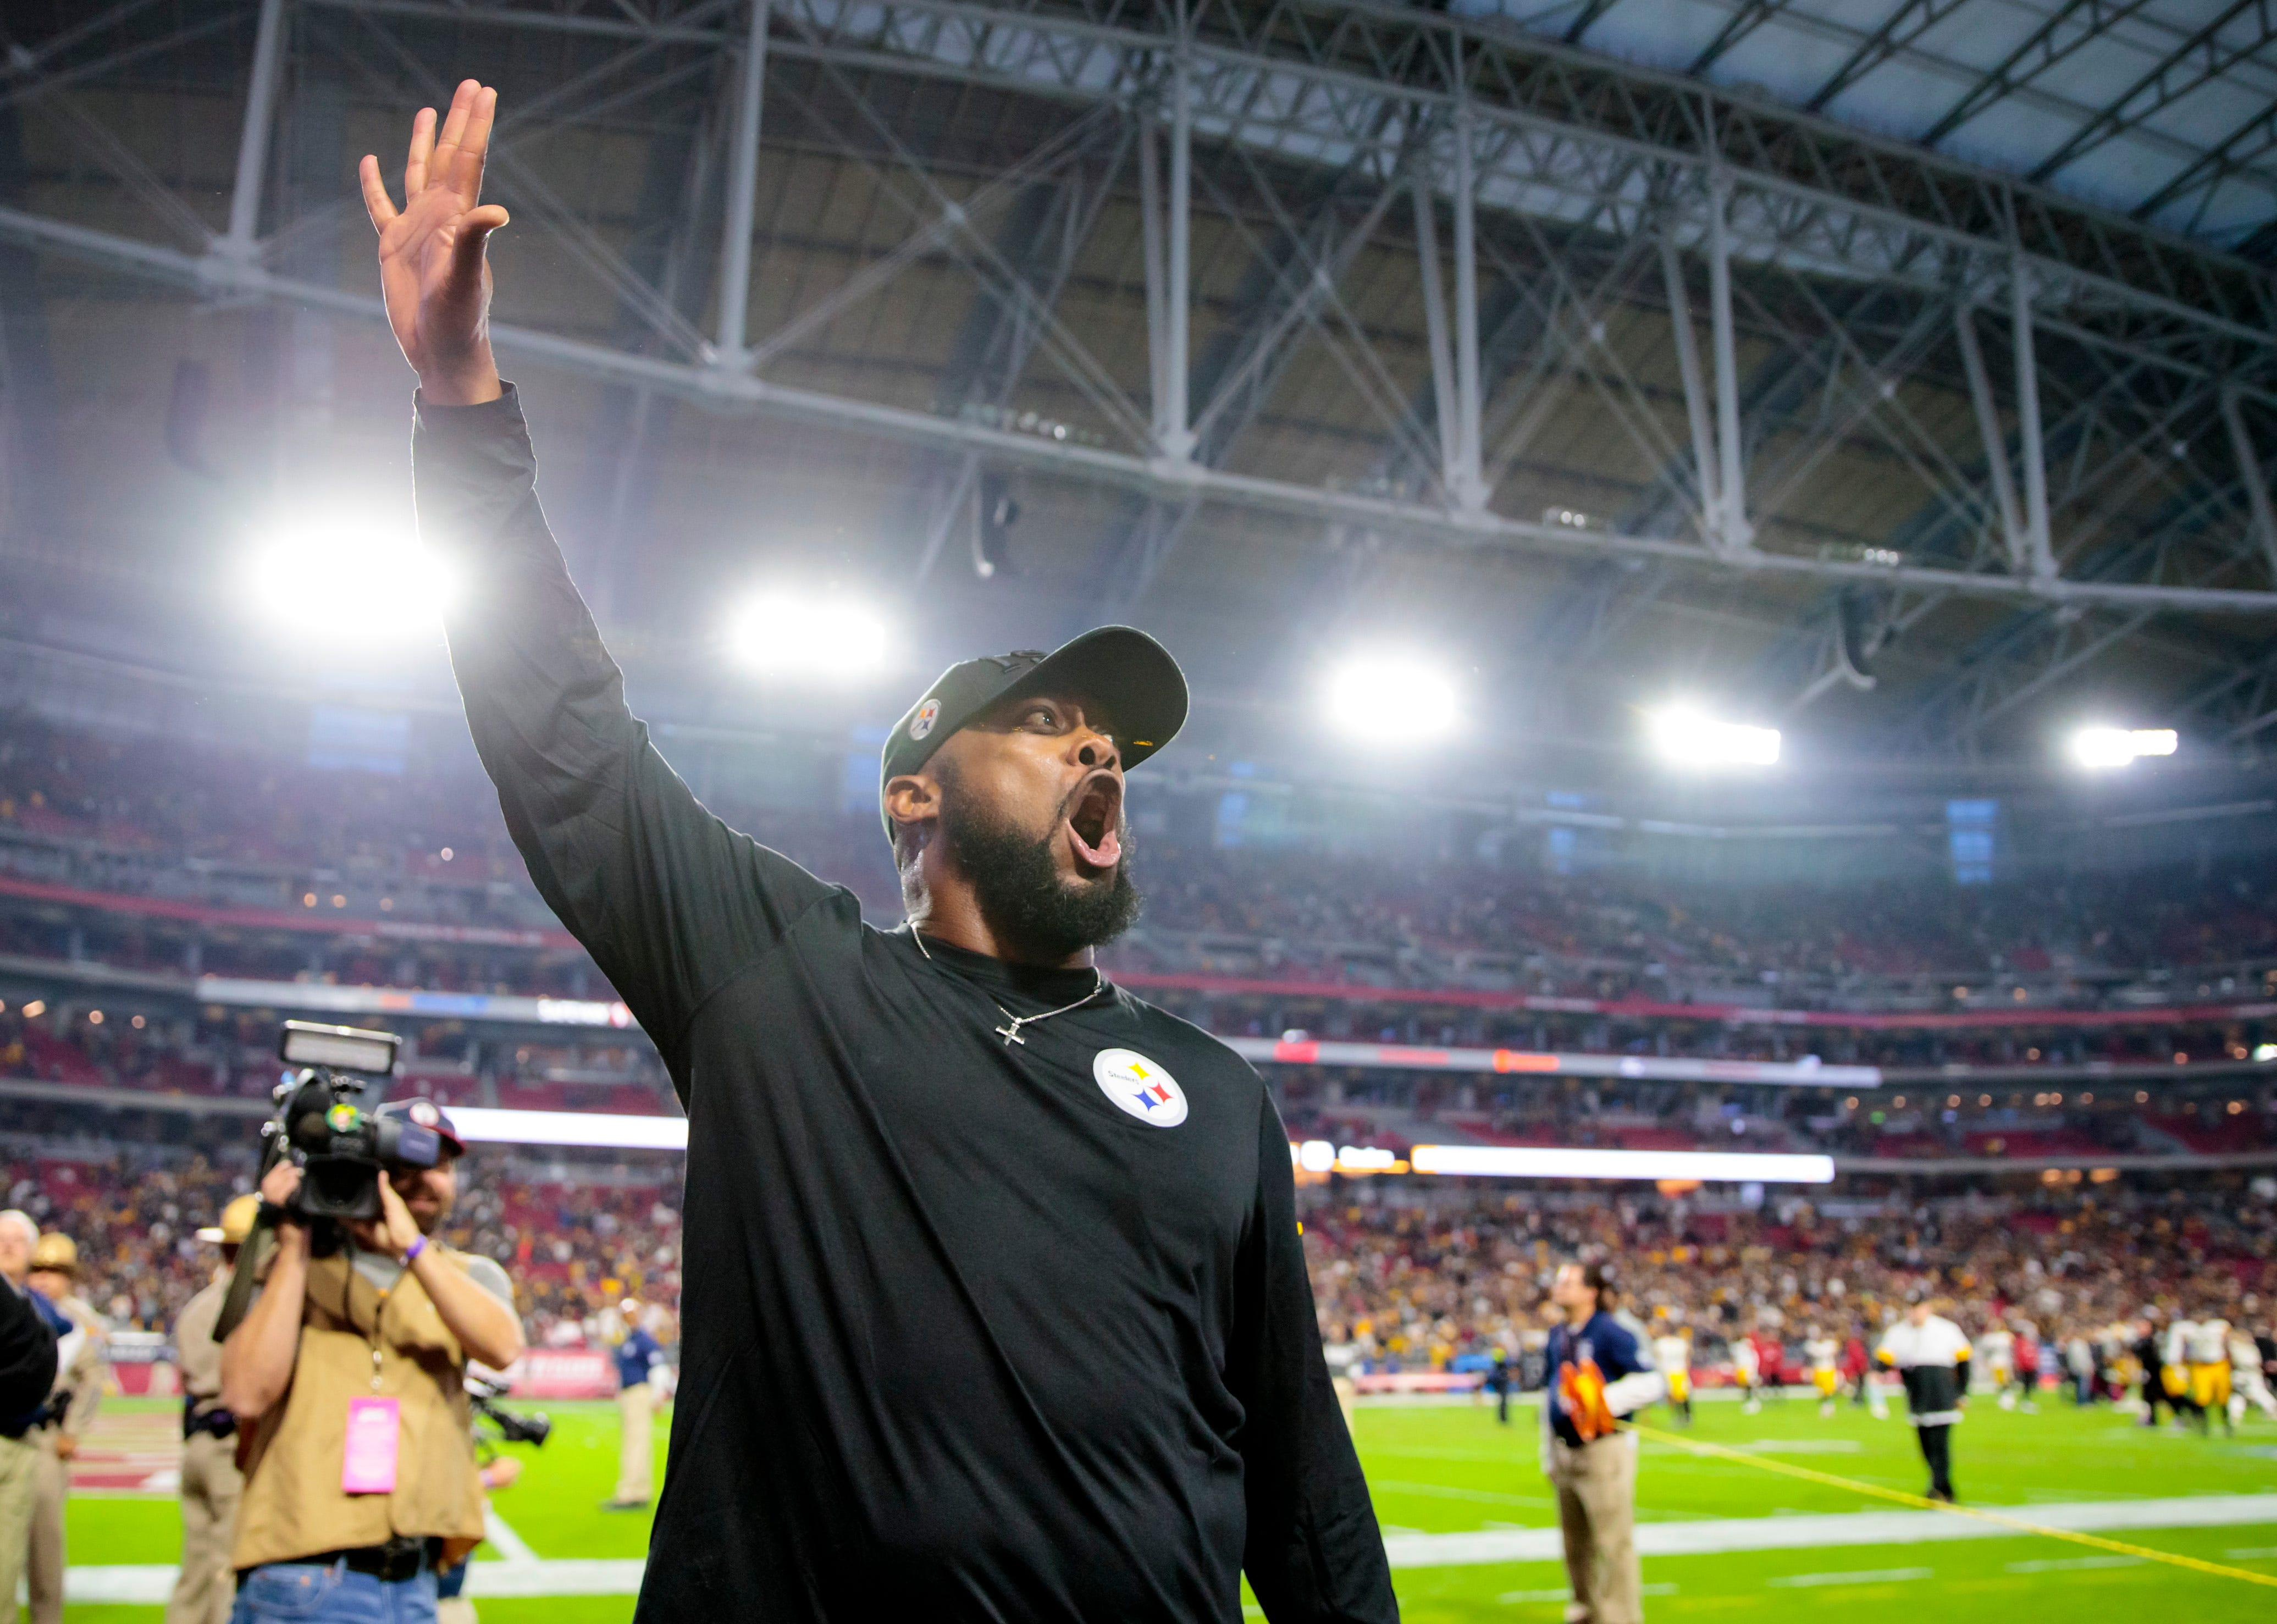 Upon Further Review: Mike Tomlin makes NFL coach of the year case by defying odds with Steelers